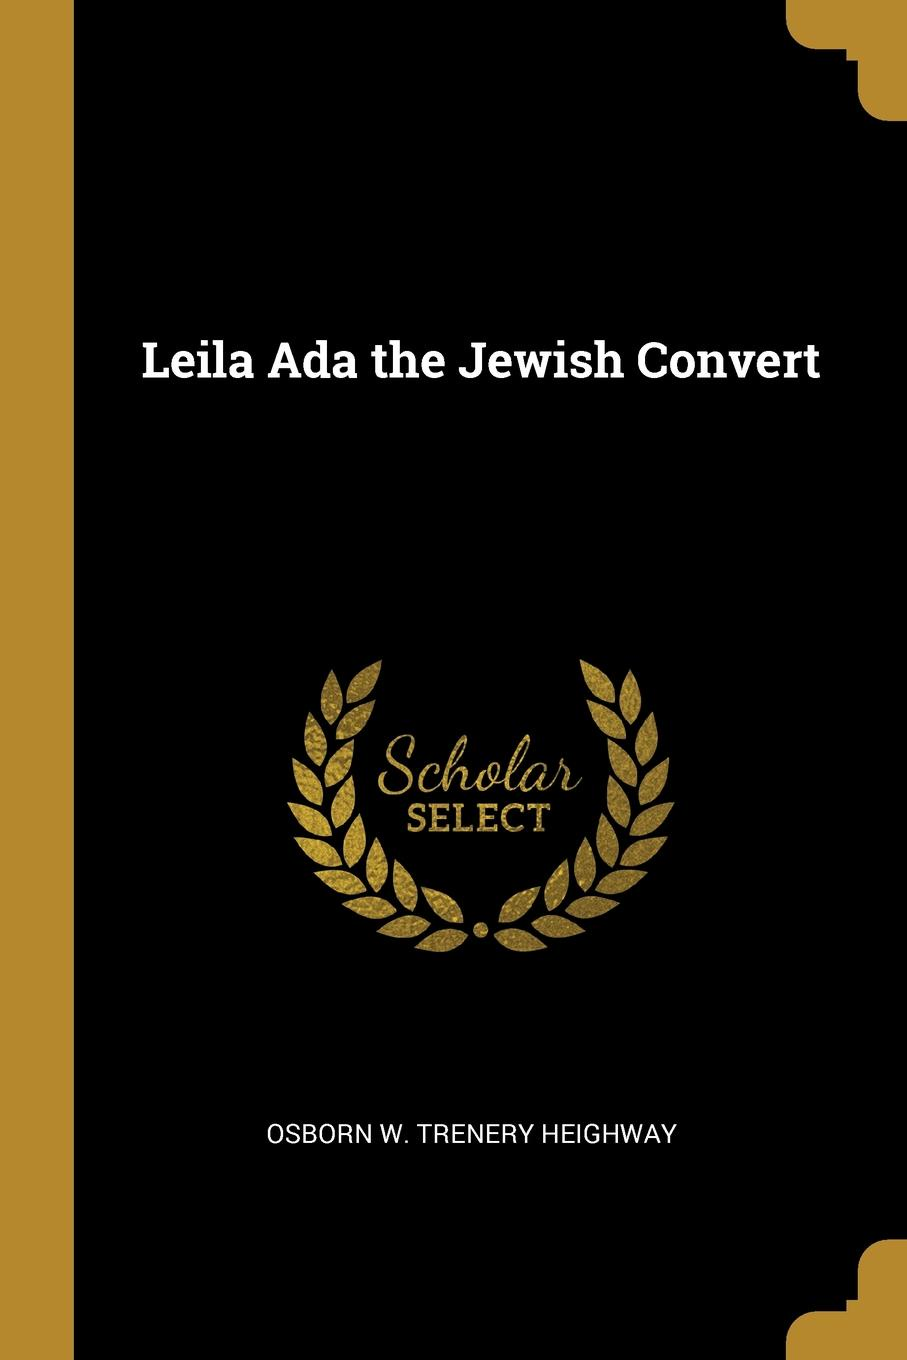 osborn W. Trenery Heighway. Leila Ada the Jewish Convert